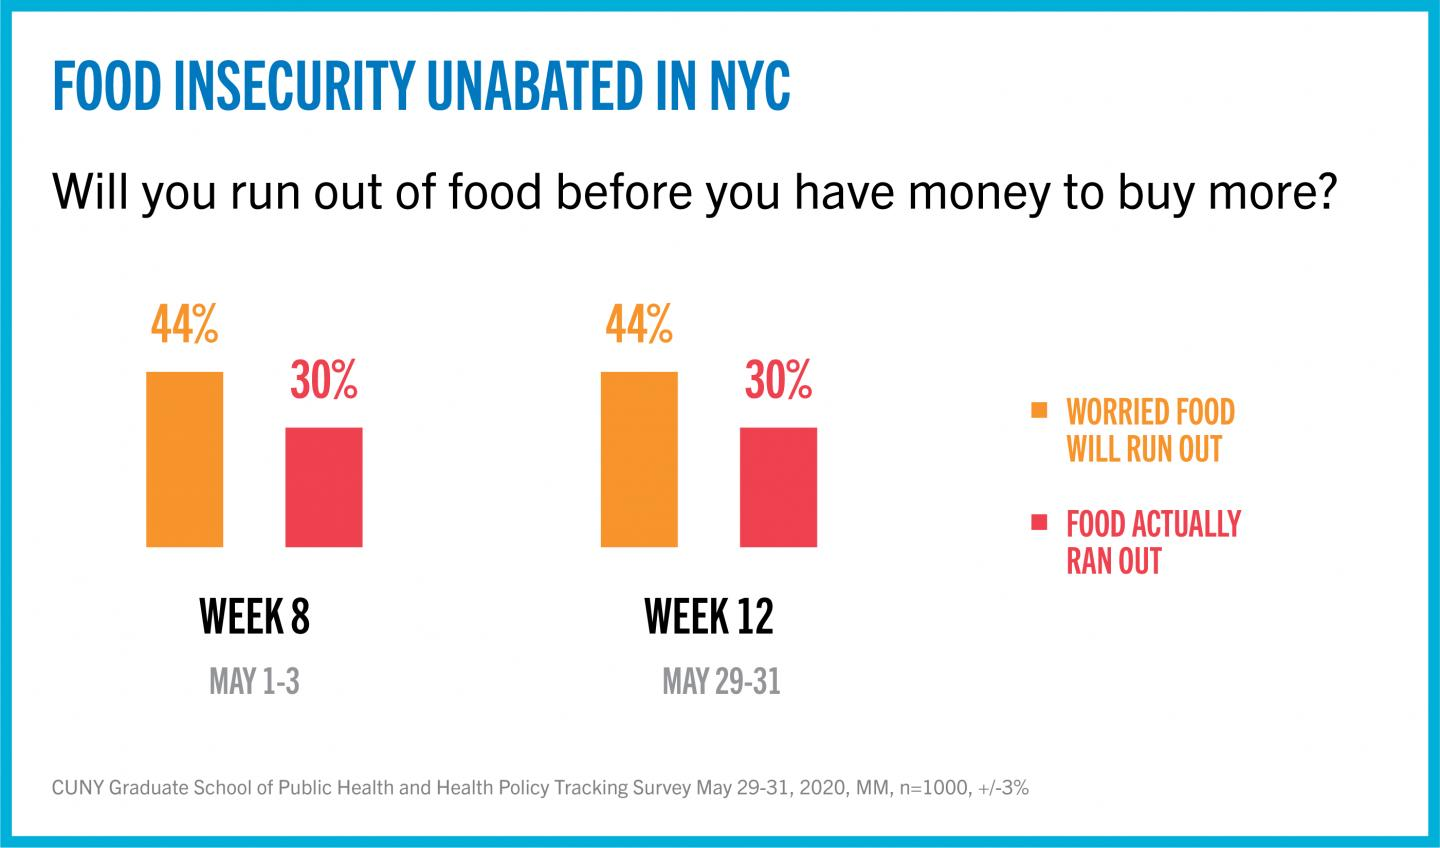 CUNY SPH COVID-19 Tracking Survey: Food Insecurity #1